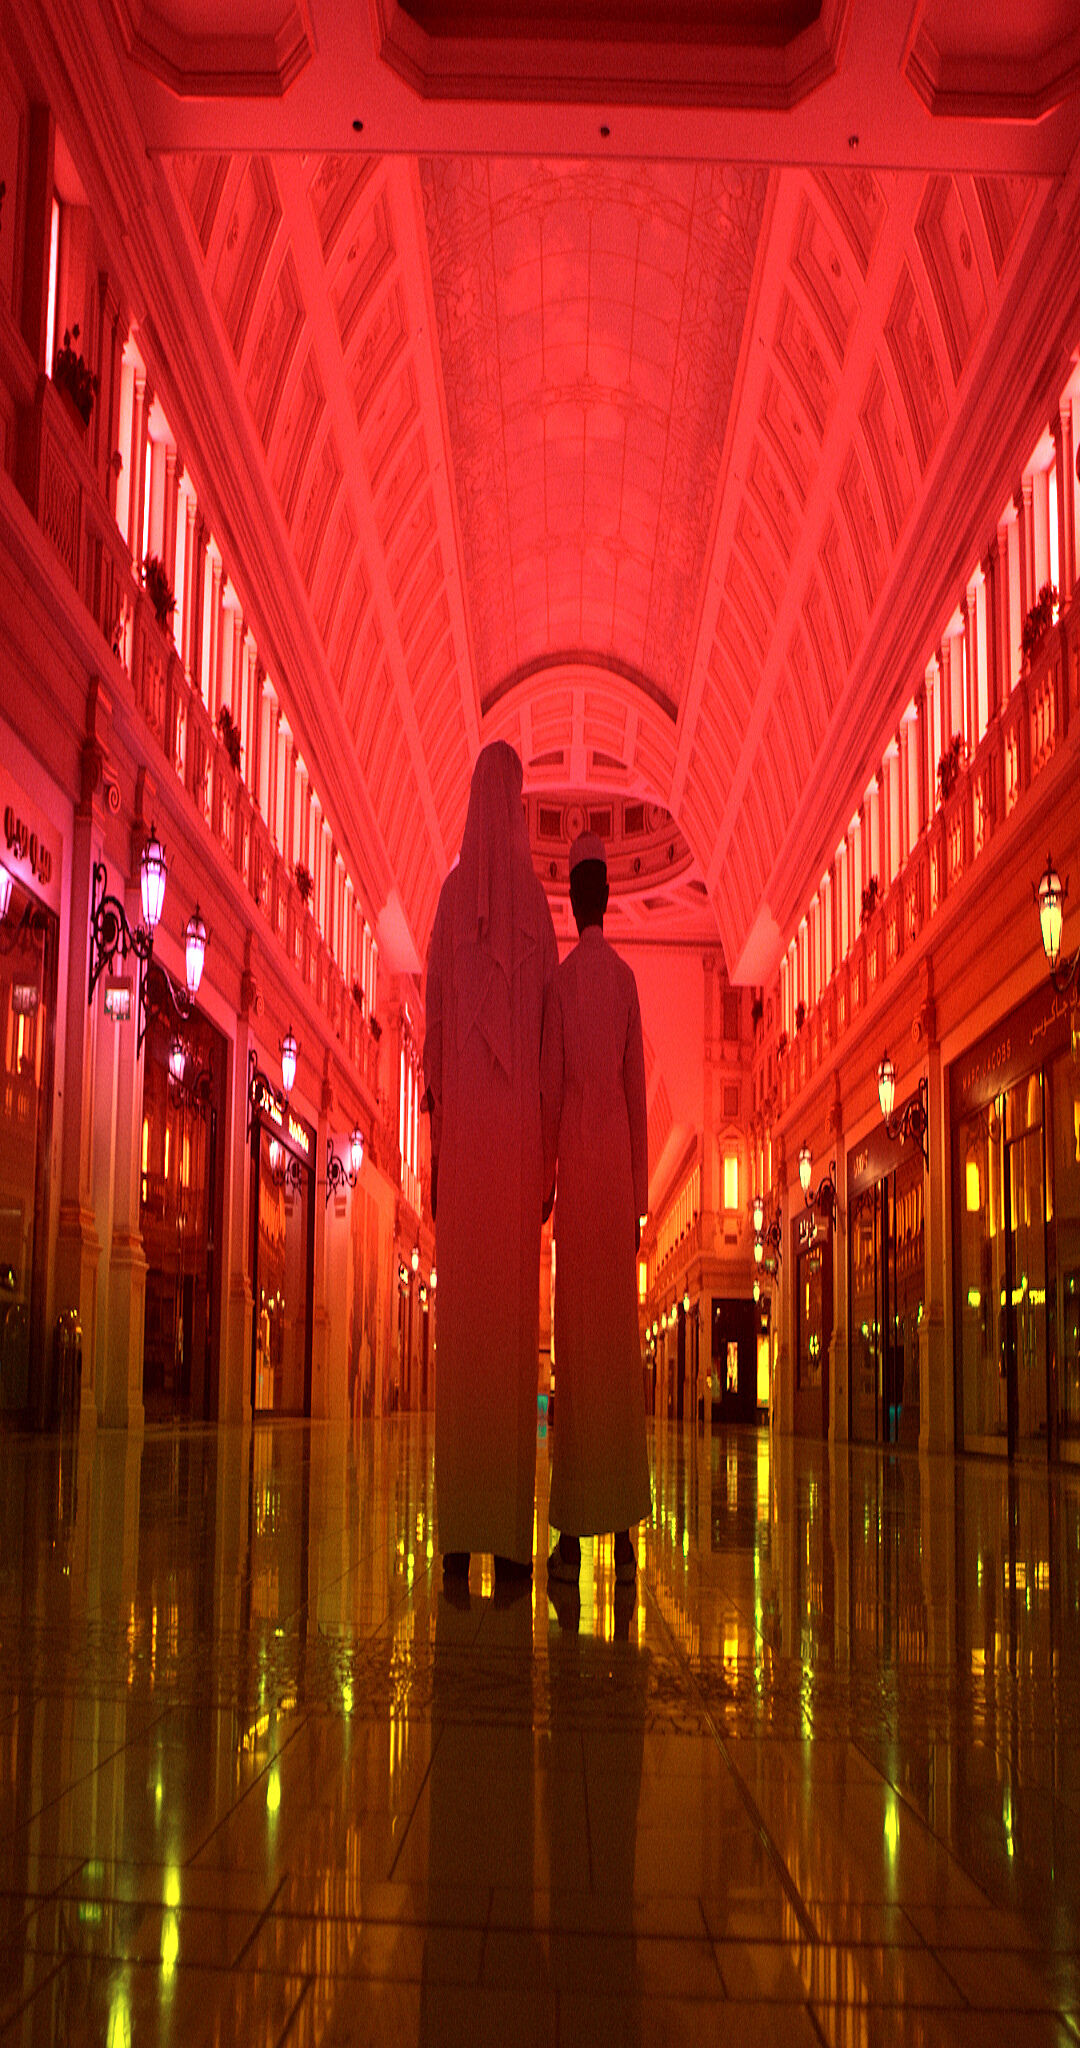 A video still by Sophia Al Maria of two people walking down a red hallway.